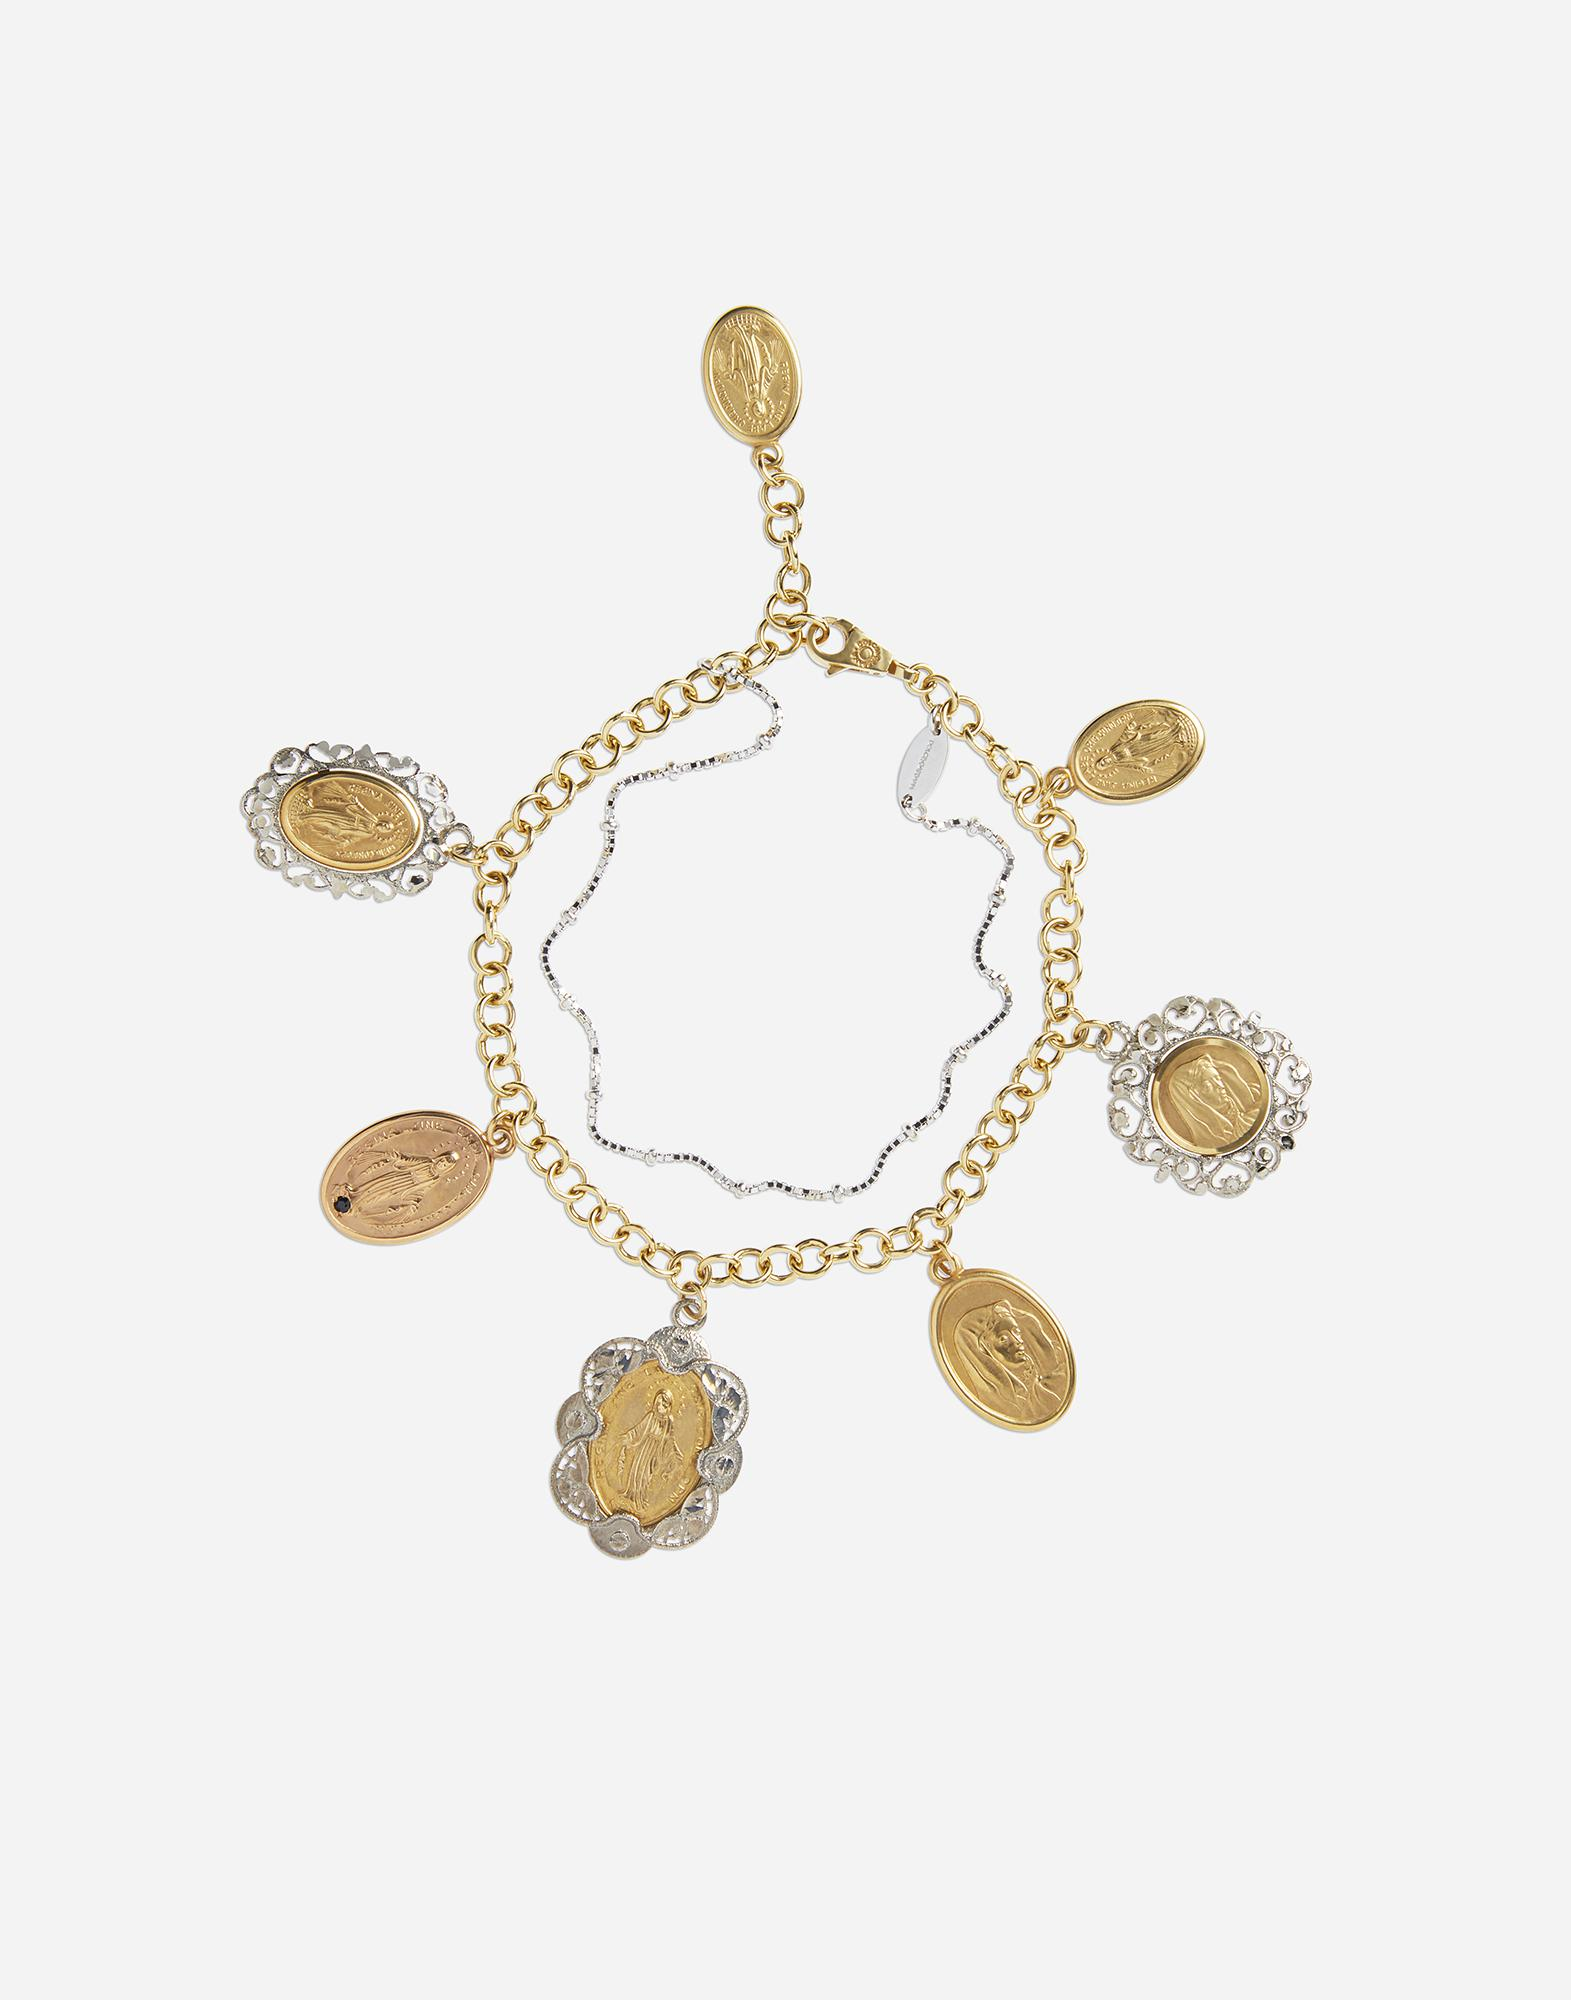 White and rose gold bracelet with religious medallions